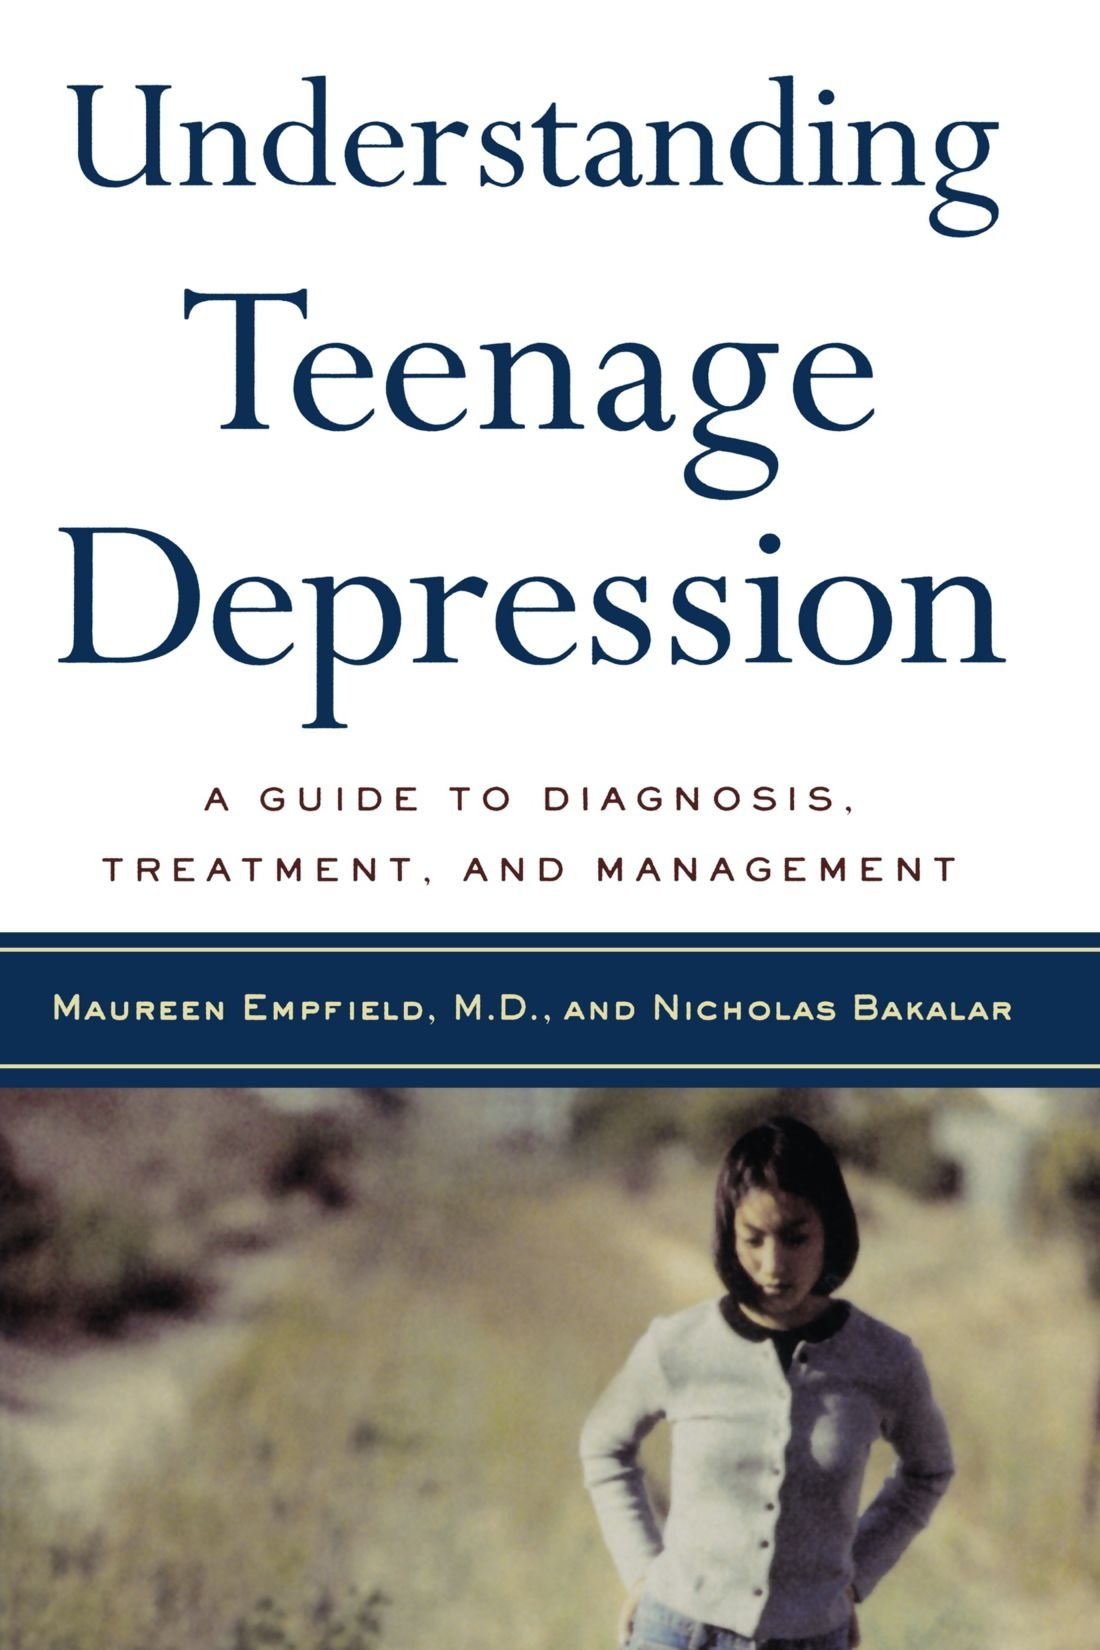 teenage depression case studies